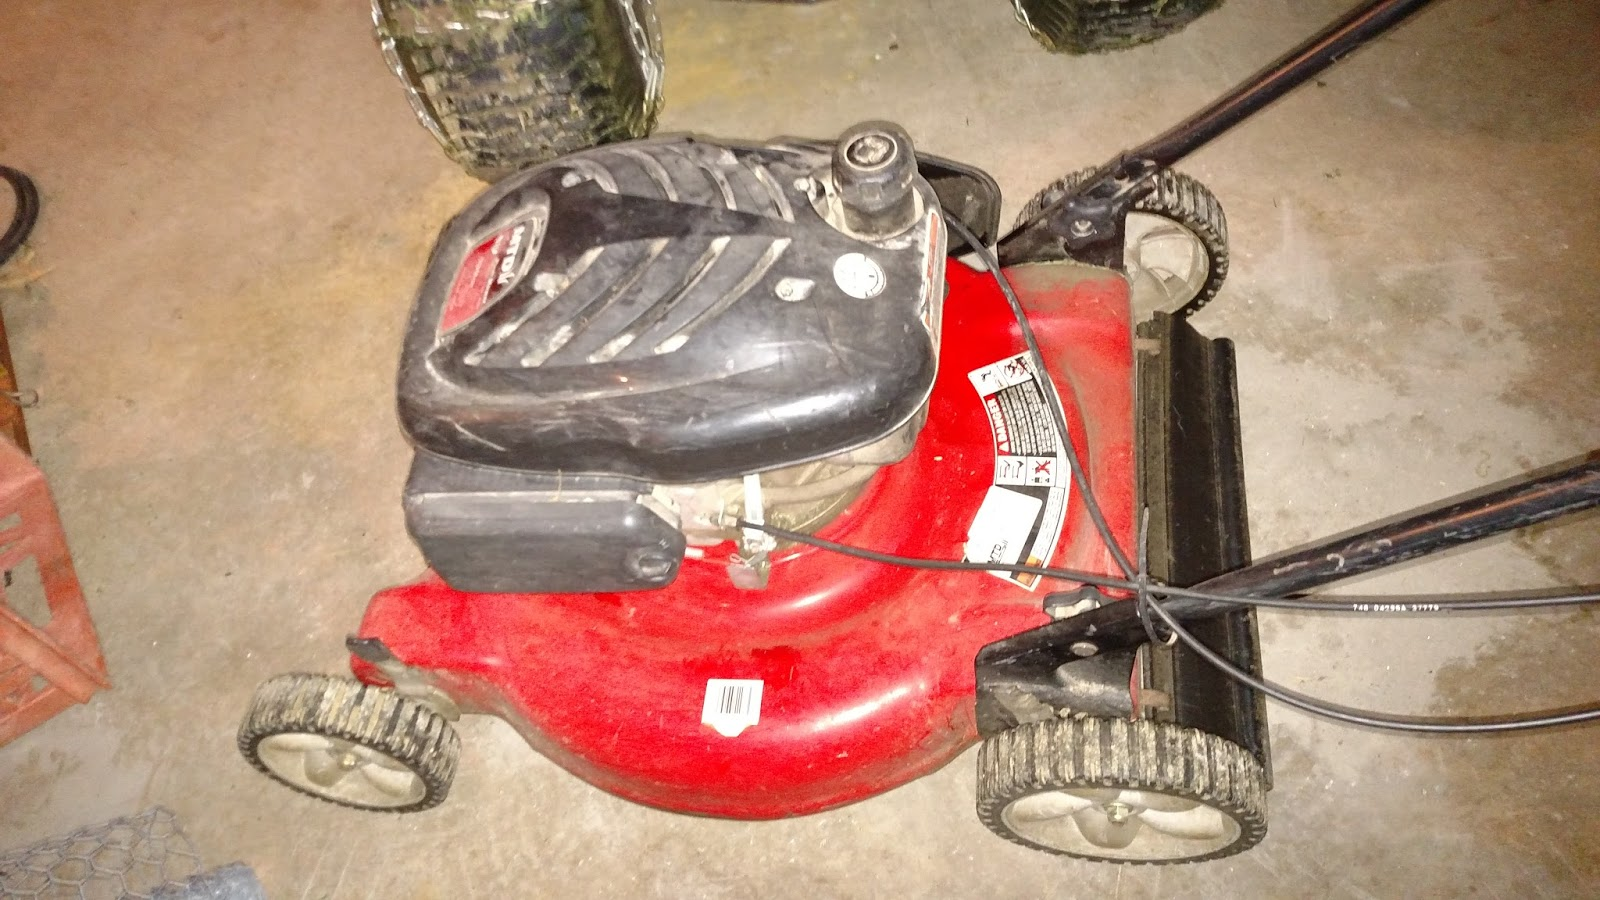 hight resolution of i replaced my broken gas mower with a cordless electric mower